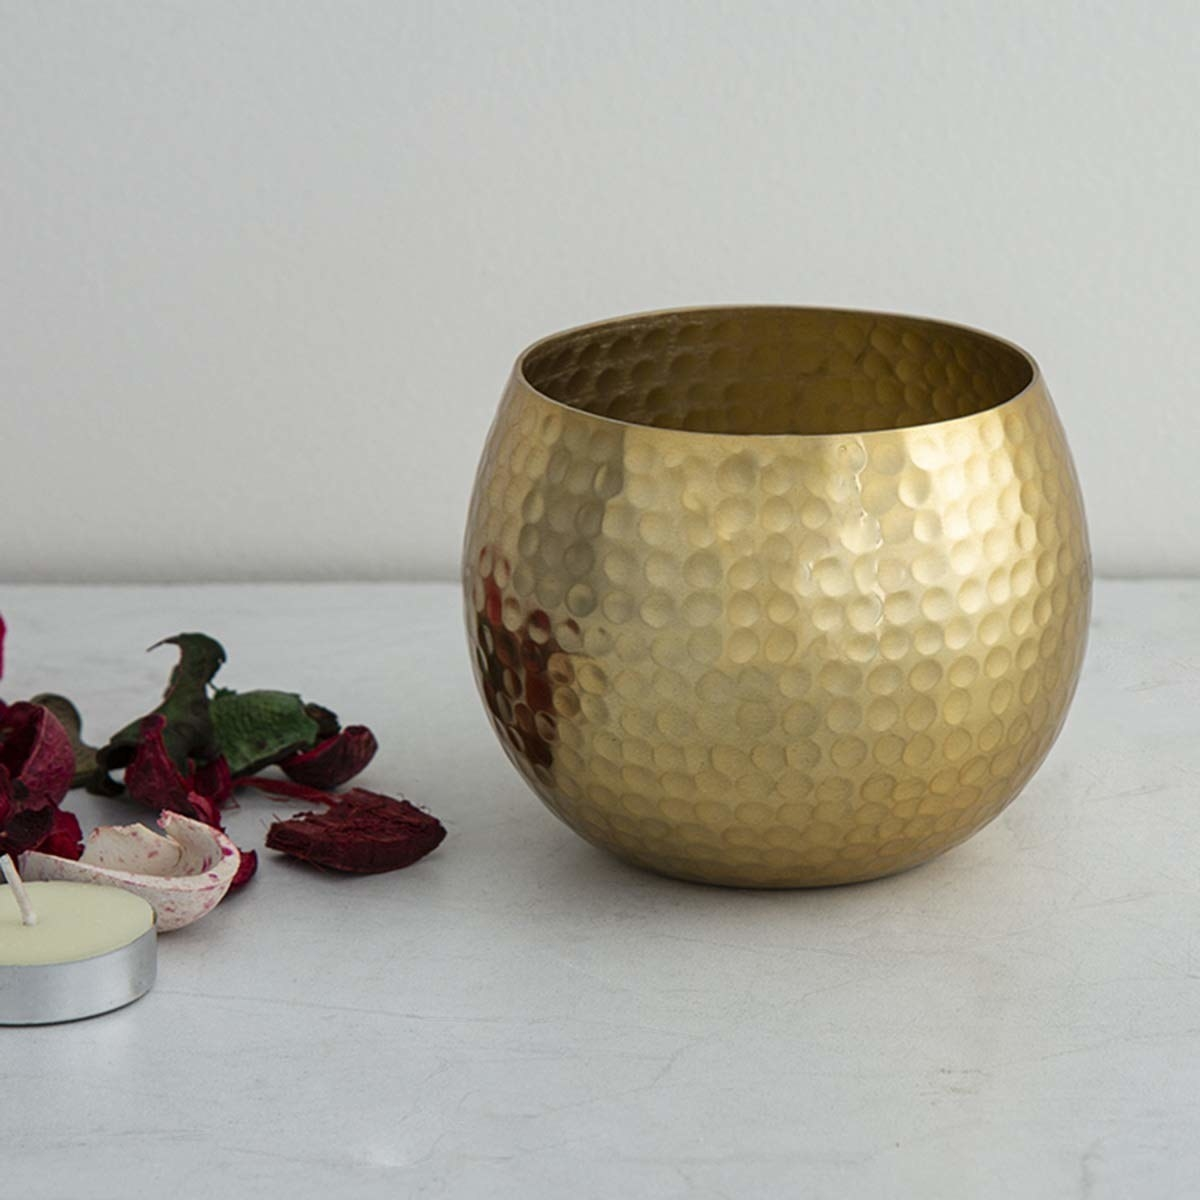 A golden tealight holder